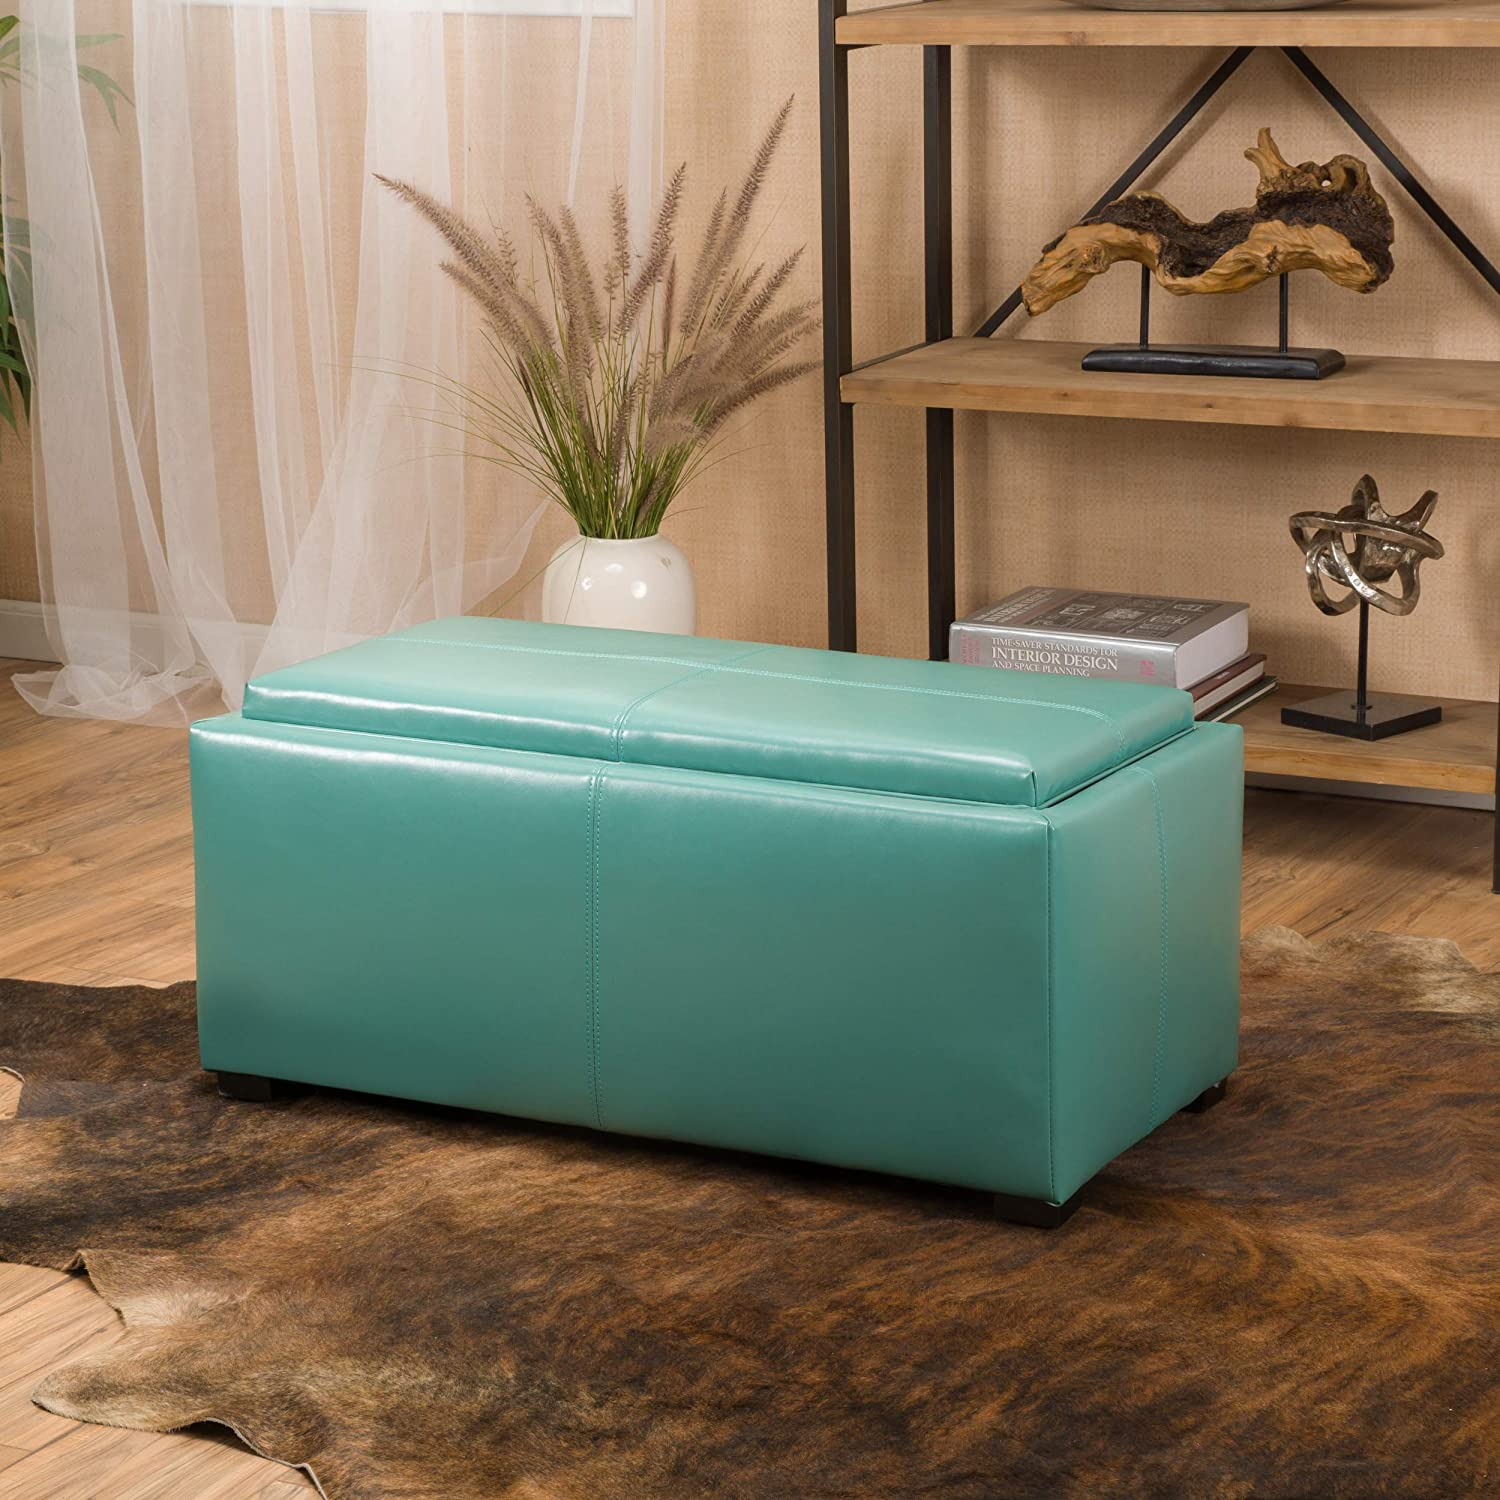 Super Christopher Knight Home August Teal 3 Piece Leather Tray Top Nested Storage Ottoman Bench Uwap Interior Chair Design Uwaporg